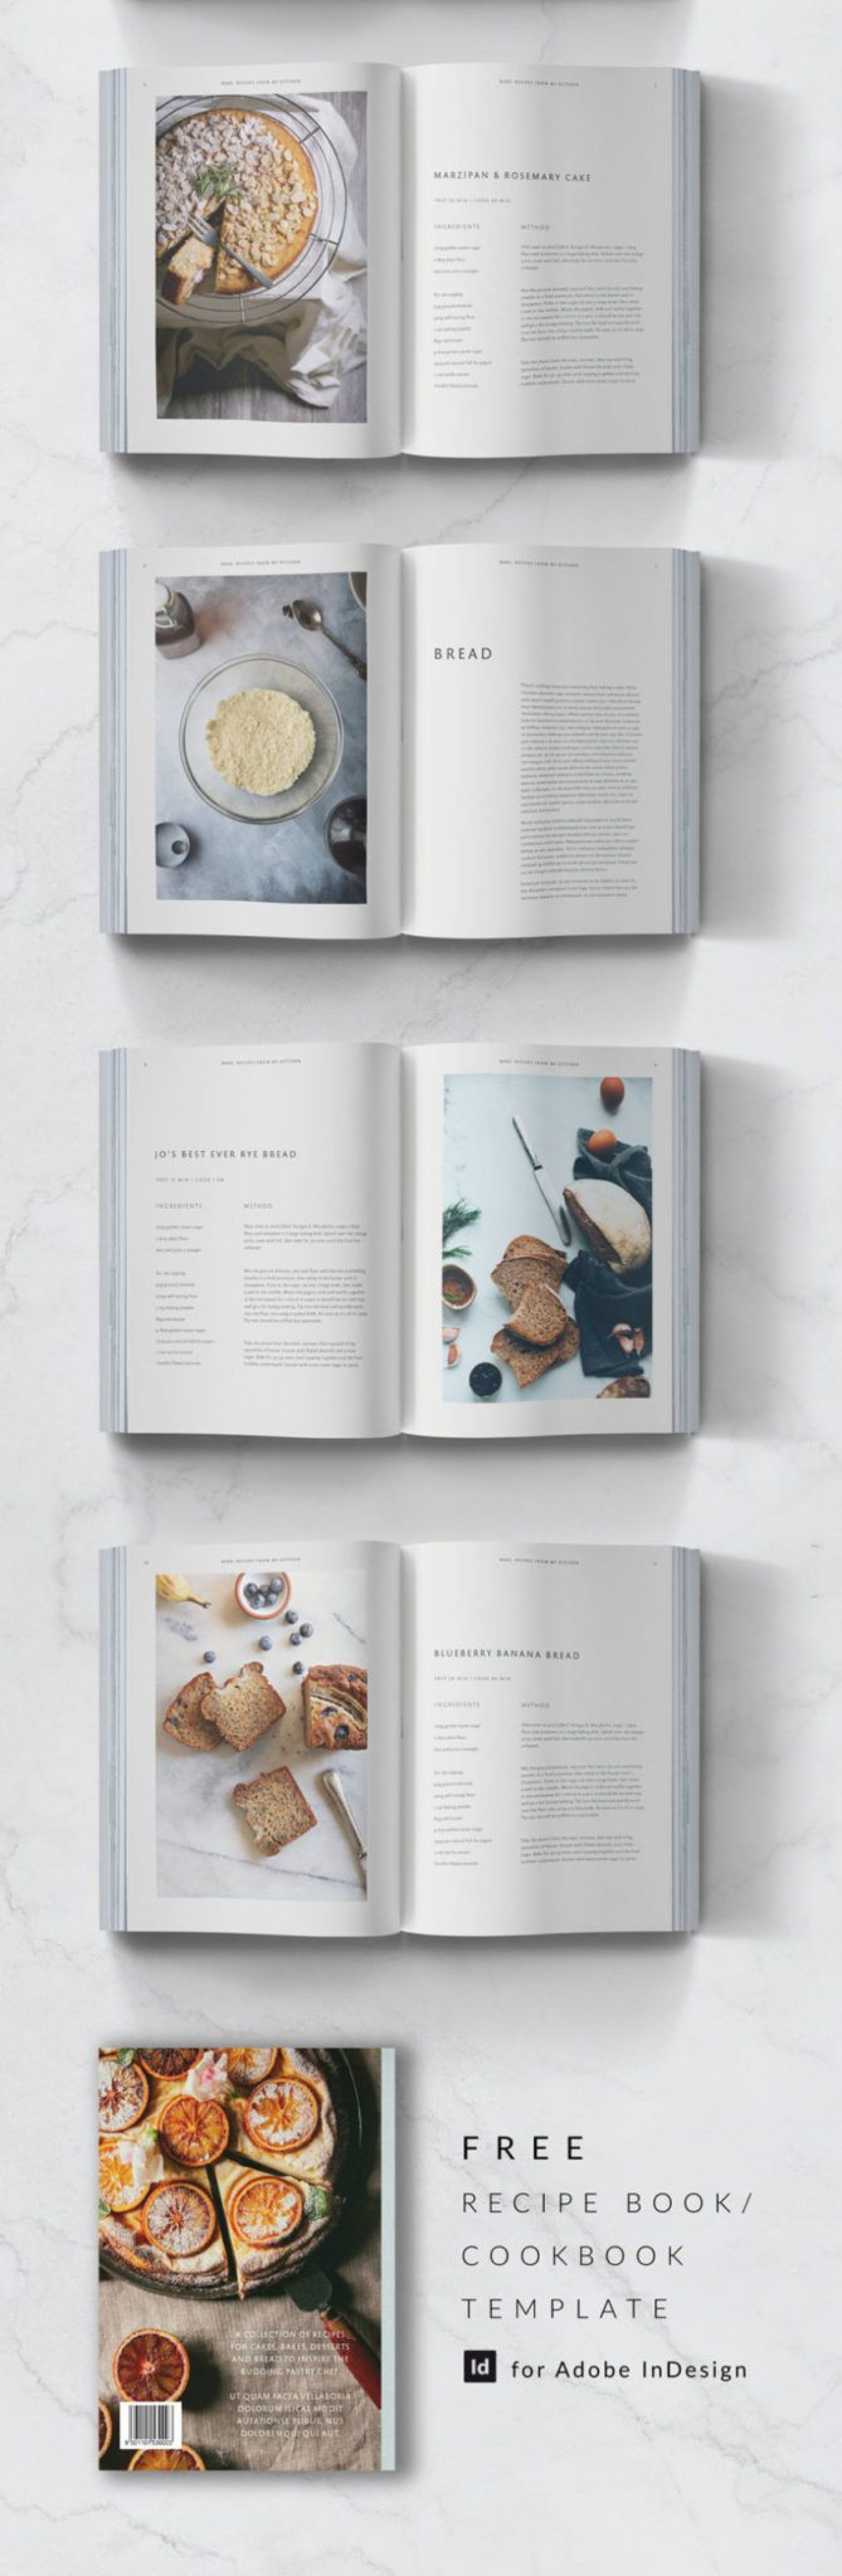 010 Exceptional Make Your Own Cookbook Template Concept  Create Free1920